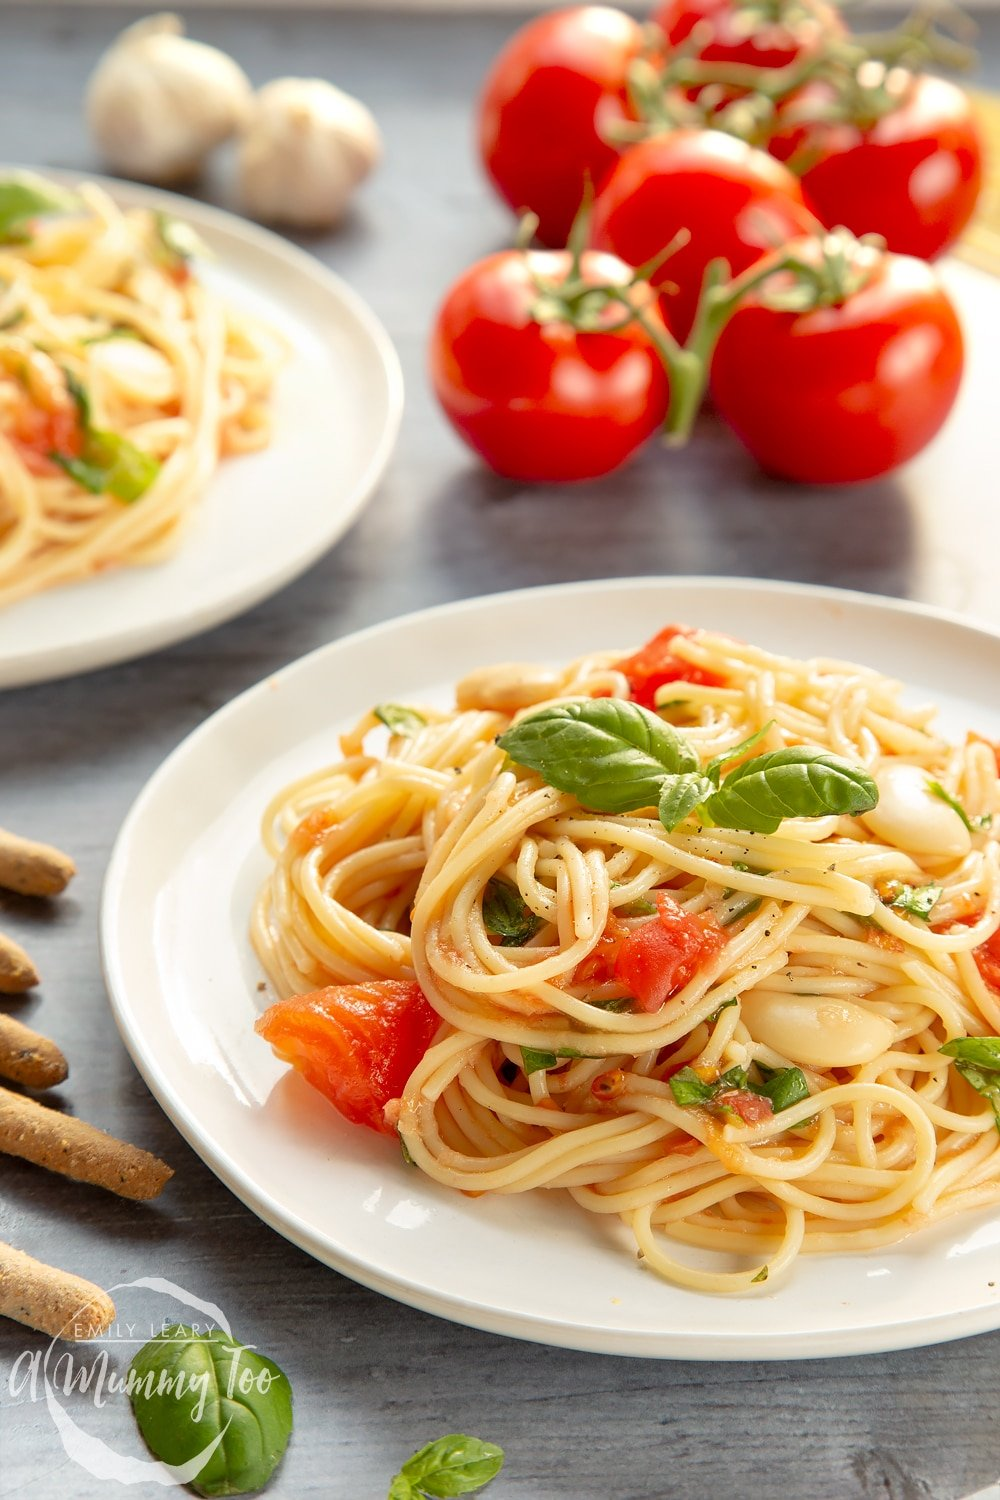 Tomato, bean and garlic spaghetti, served on a plate